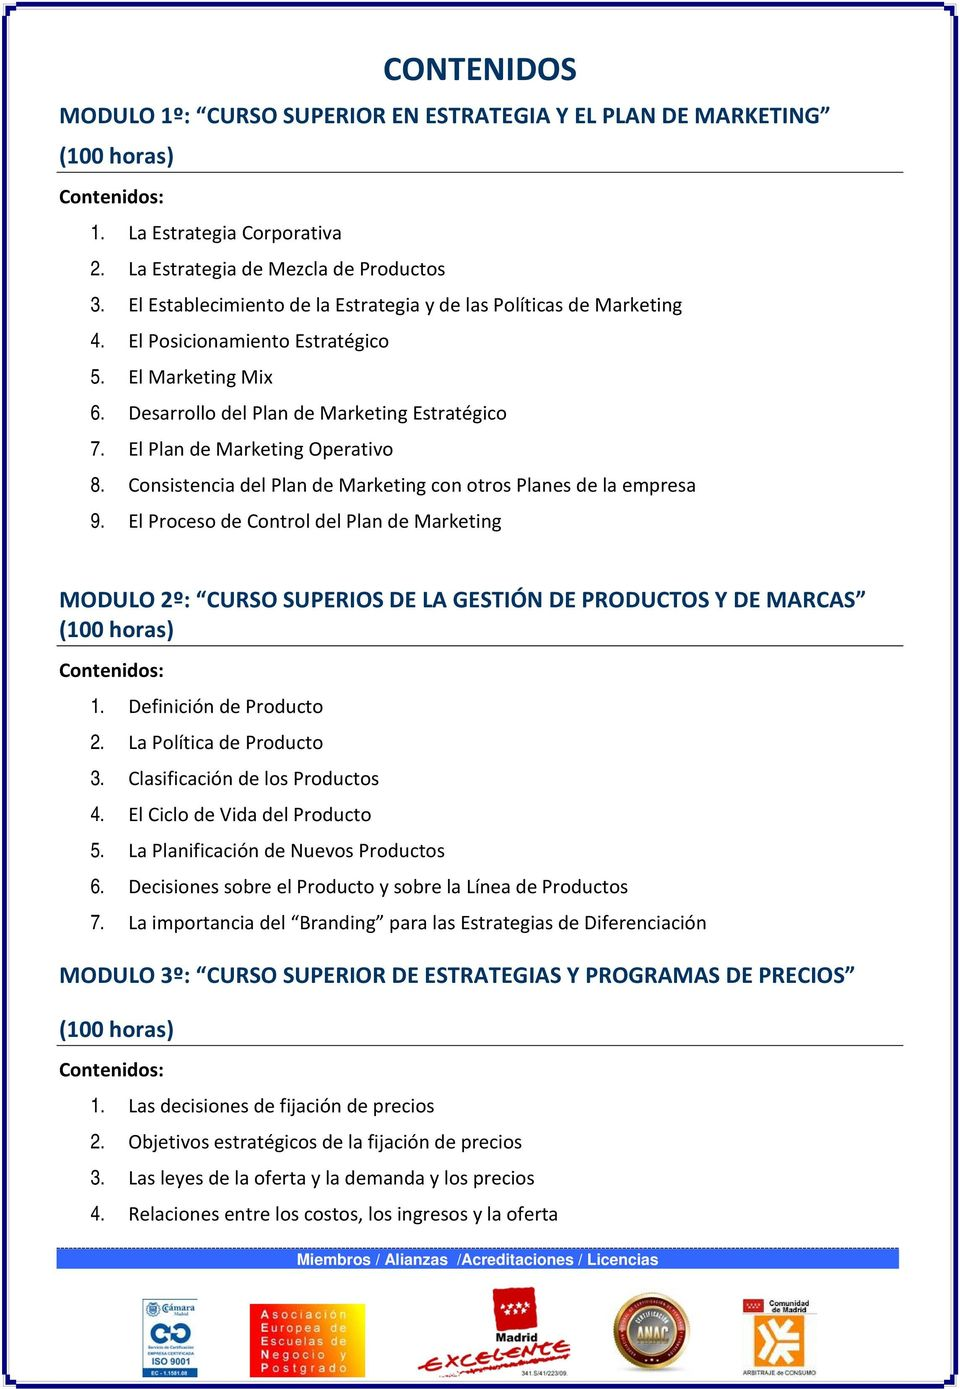 El Plan de Marketing Operativo 8. Consistencia del Plan de Marketing con otros Planes de la empresa 9.